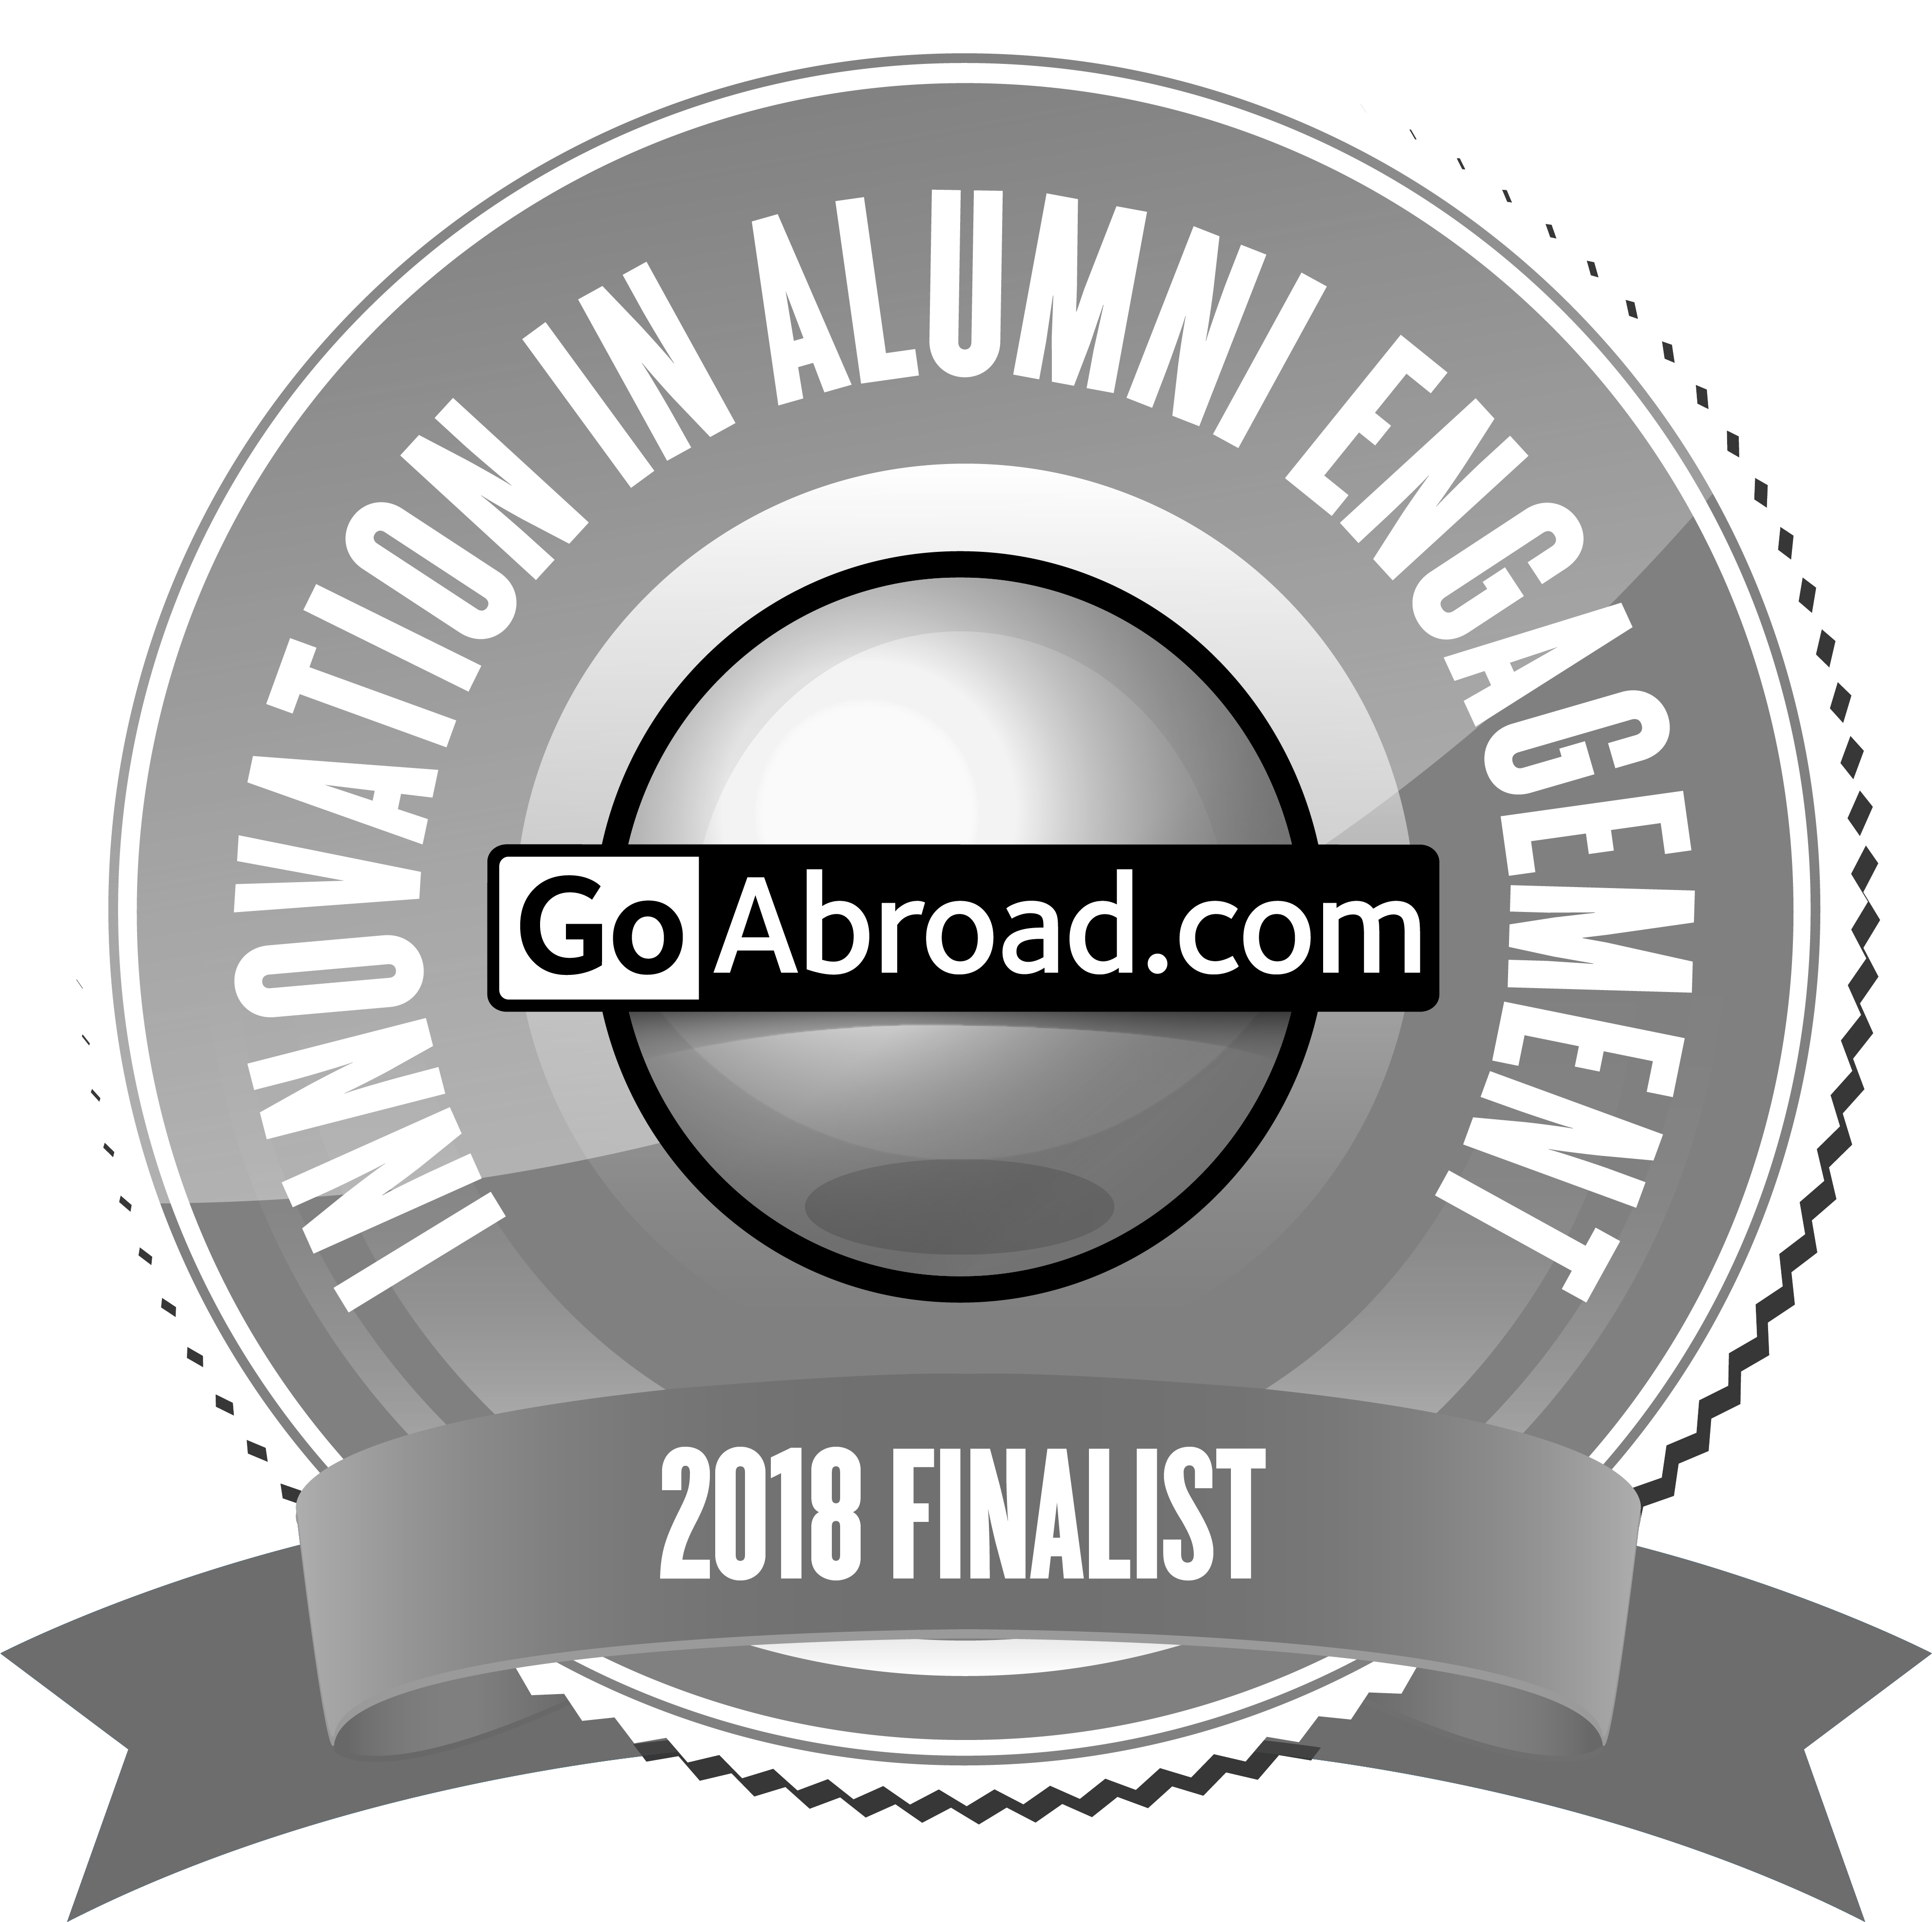 Nominated for Goabroad Awards in Innovation in Alumni Engagement 2018